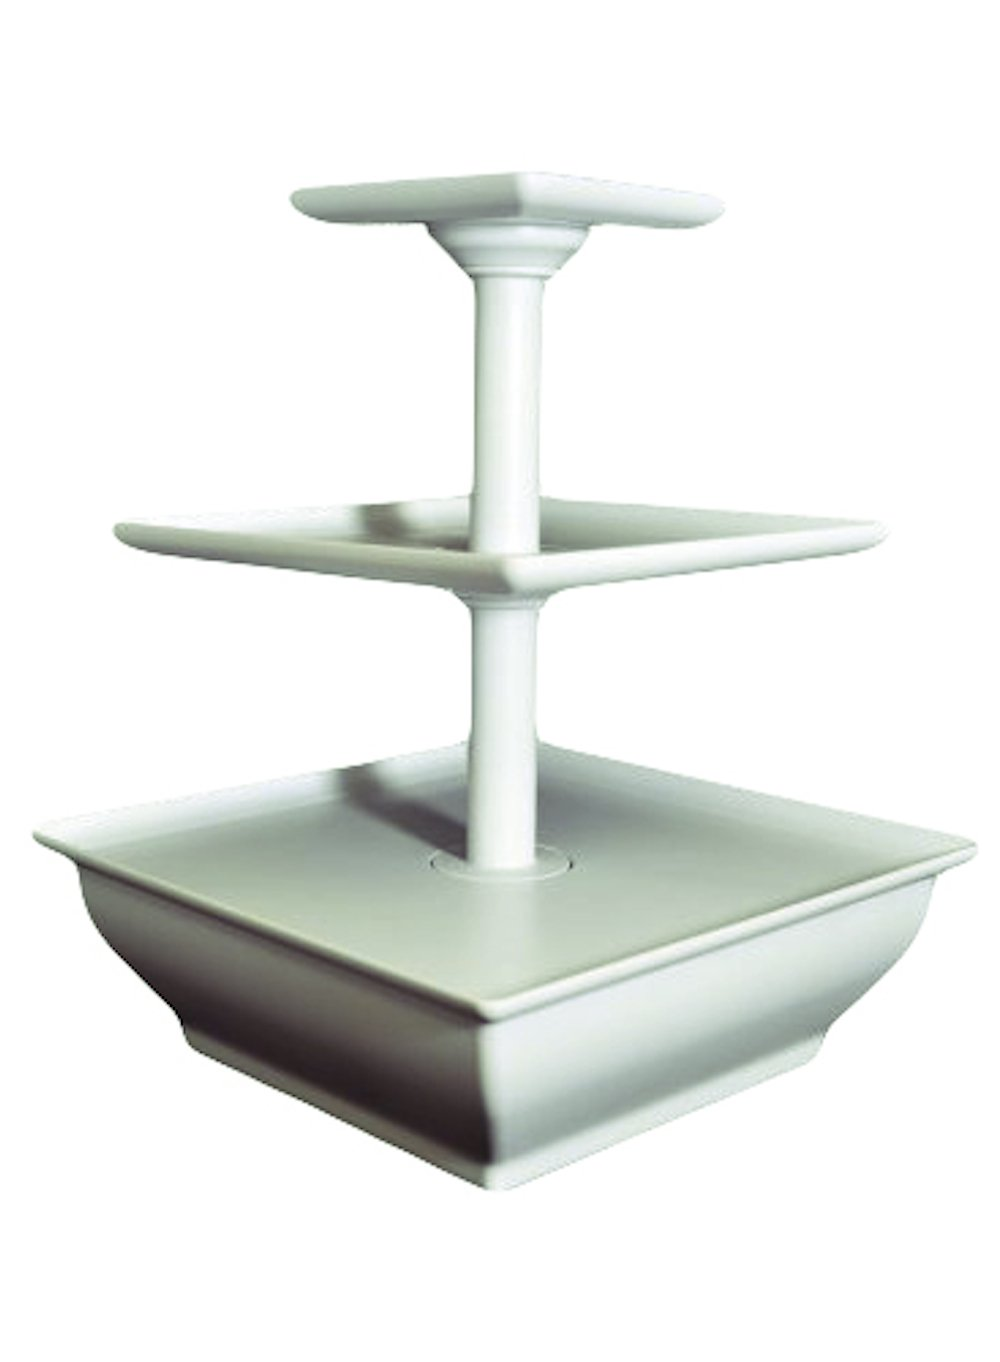 EdgeVantage White Three Tier Server Station - Dessert Tray - Cupcake Stand - Food Display E-093